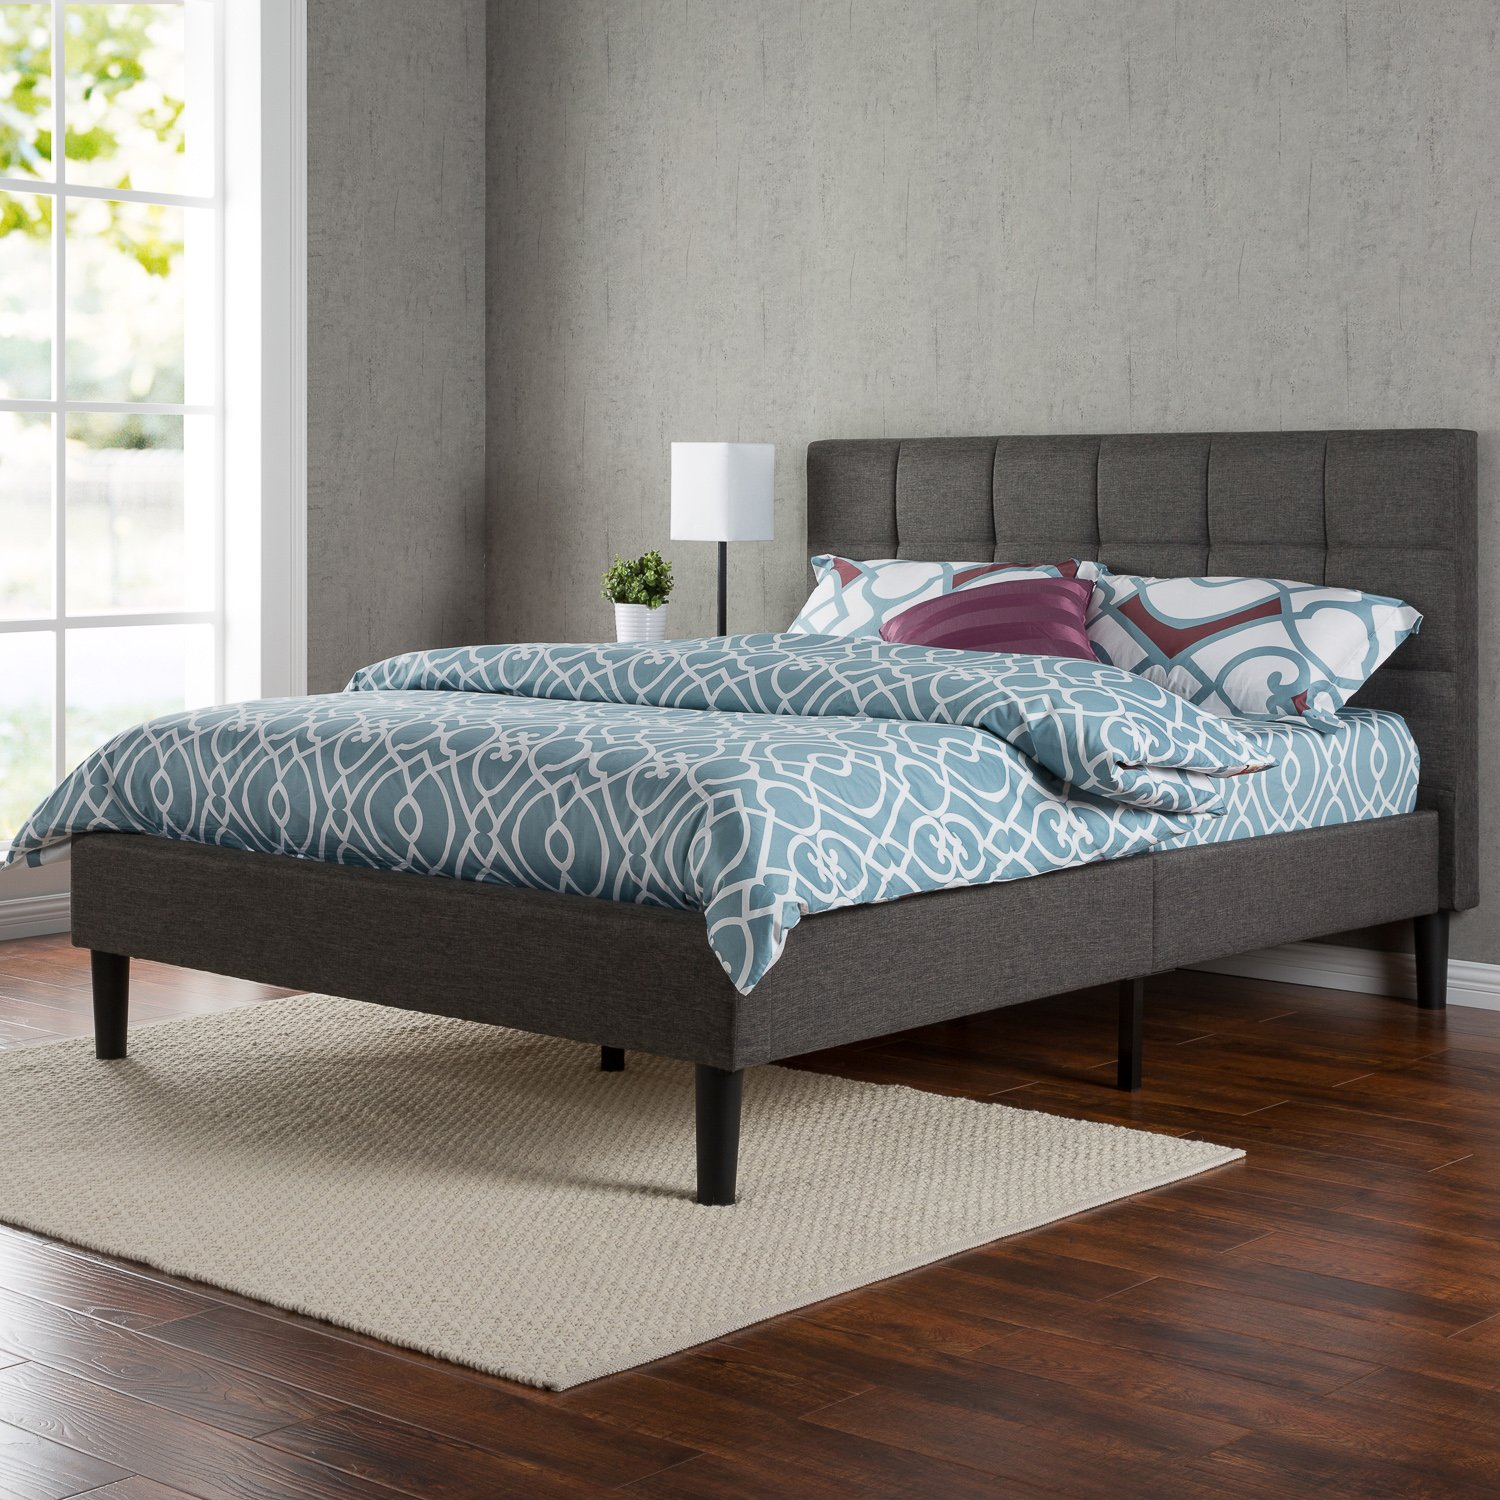 Zinus Lottie Upholstered Square Stitched Platform Bed